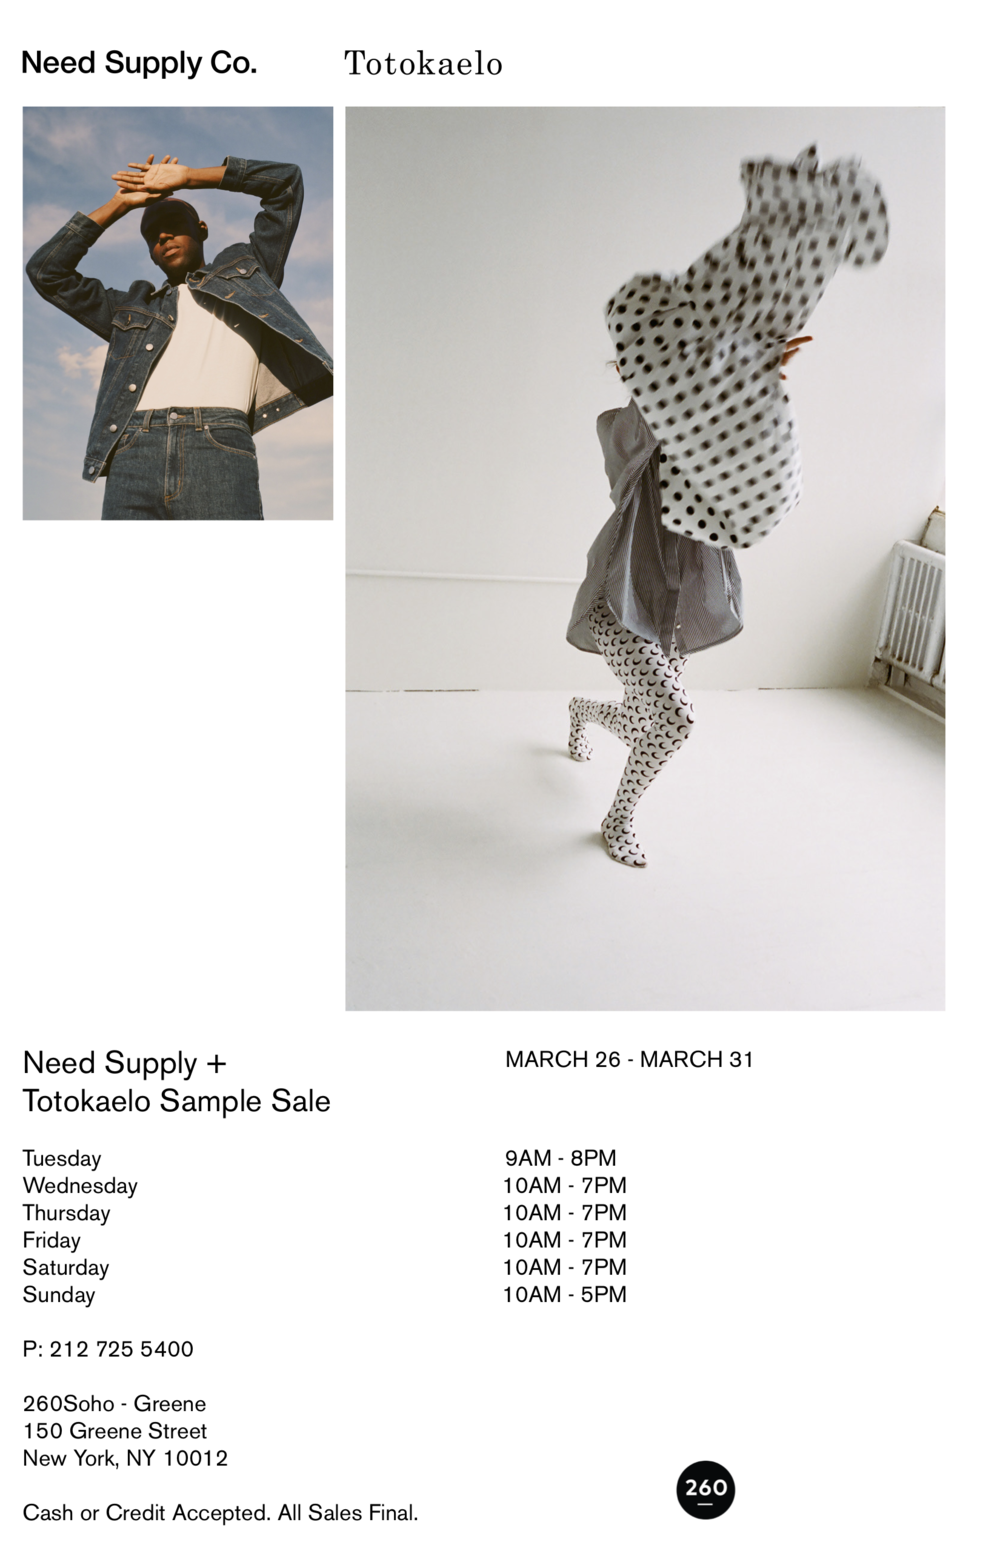 NSTO_Sample_Sale_Flyer_11x17.png